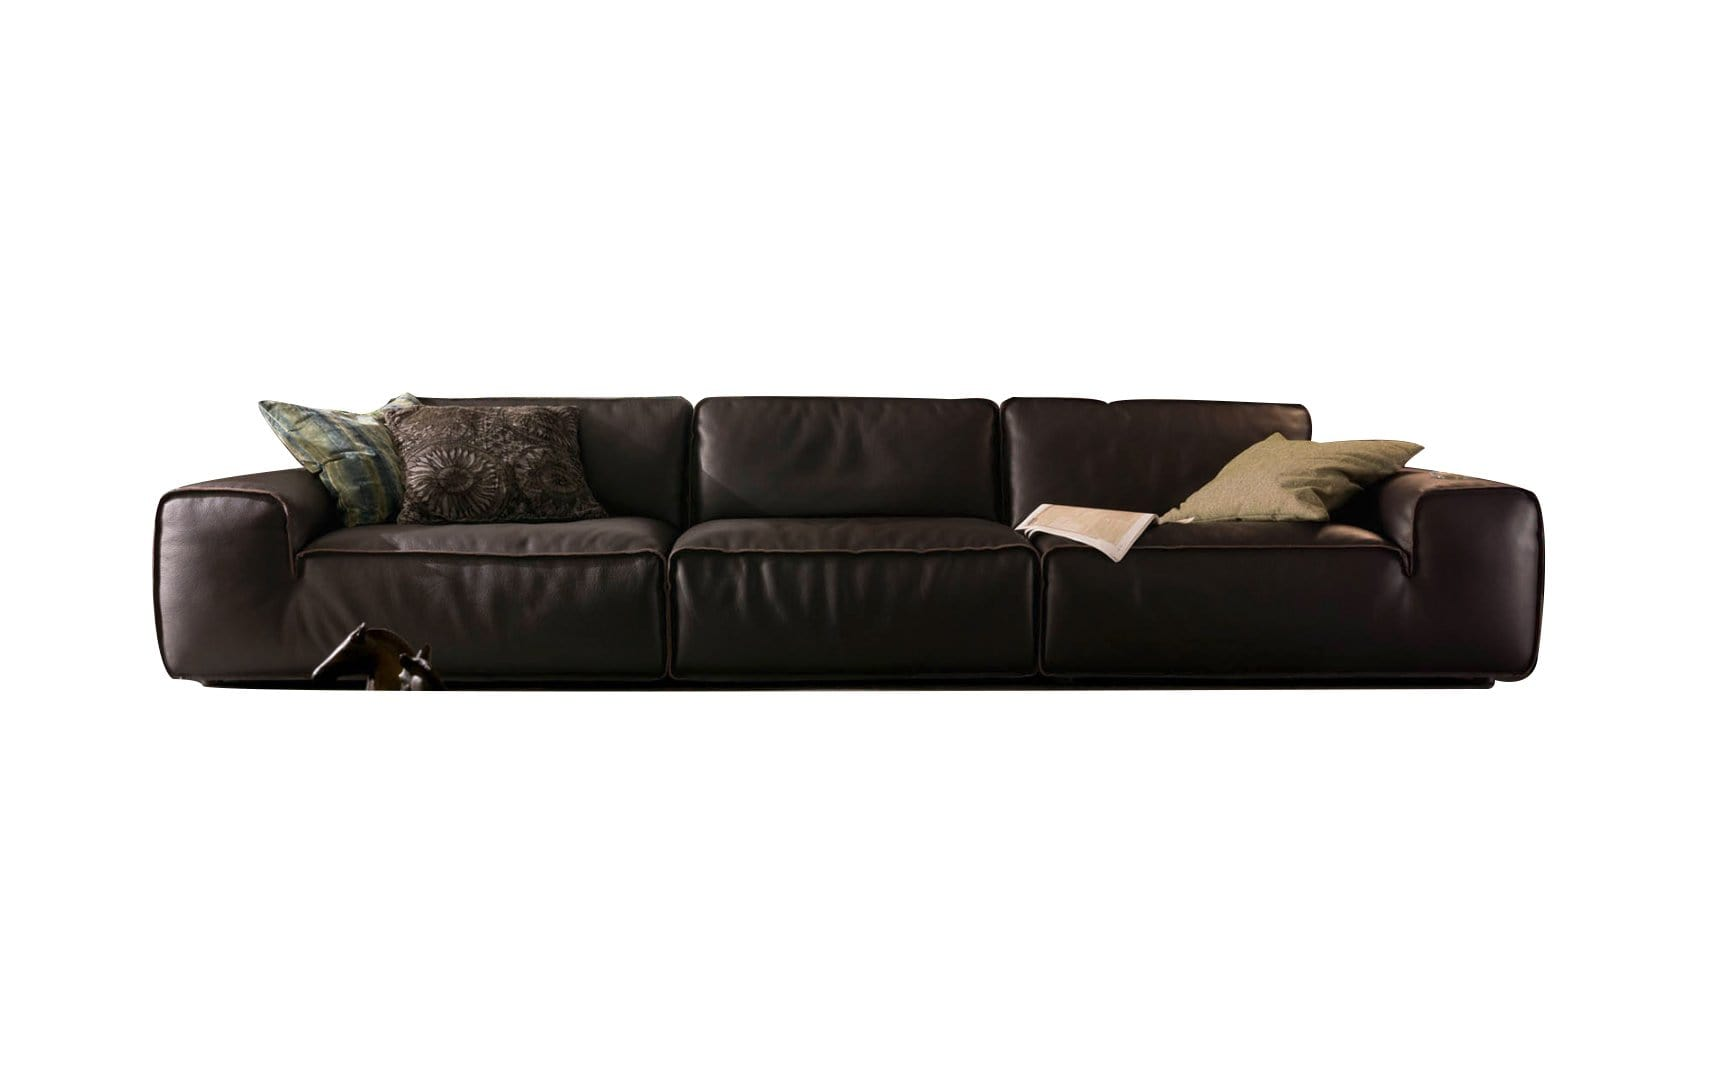 Chateau D'ax Couches & Sofa Avenue Leather Sofa Delux (U914)